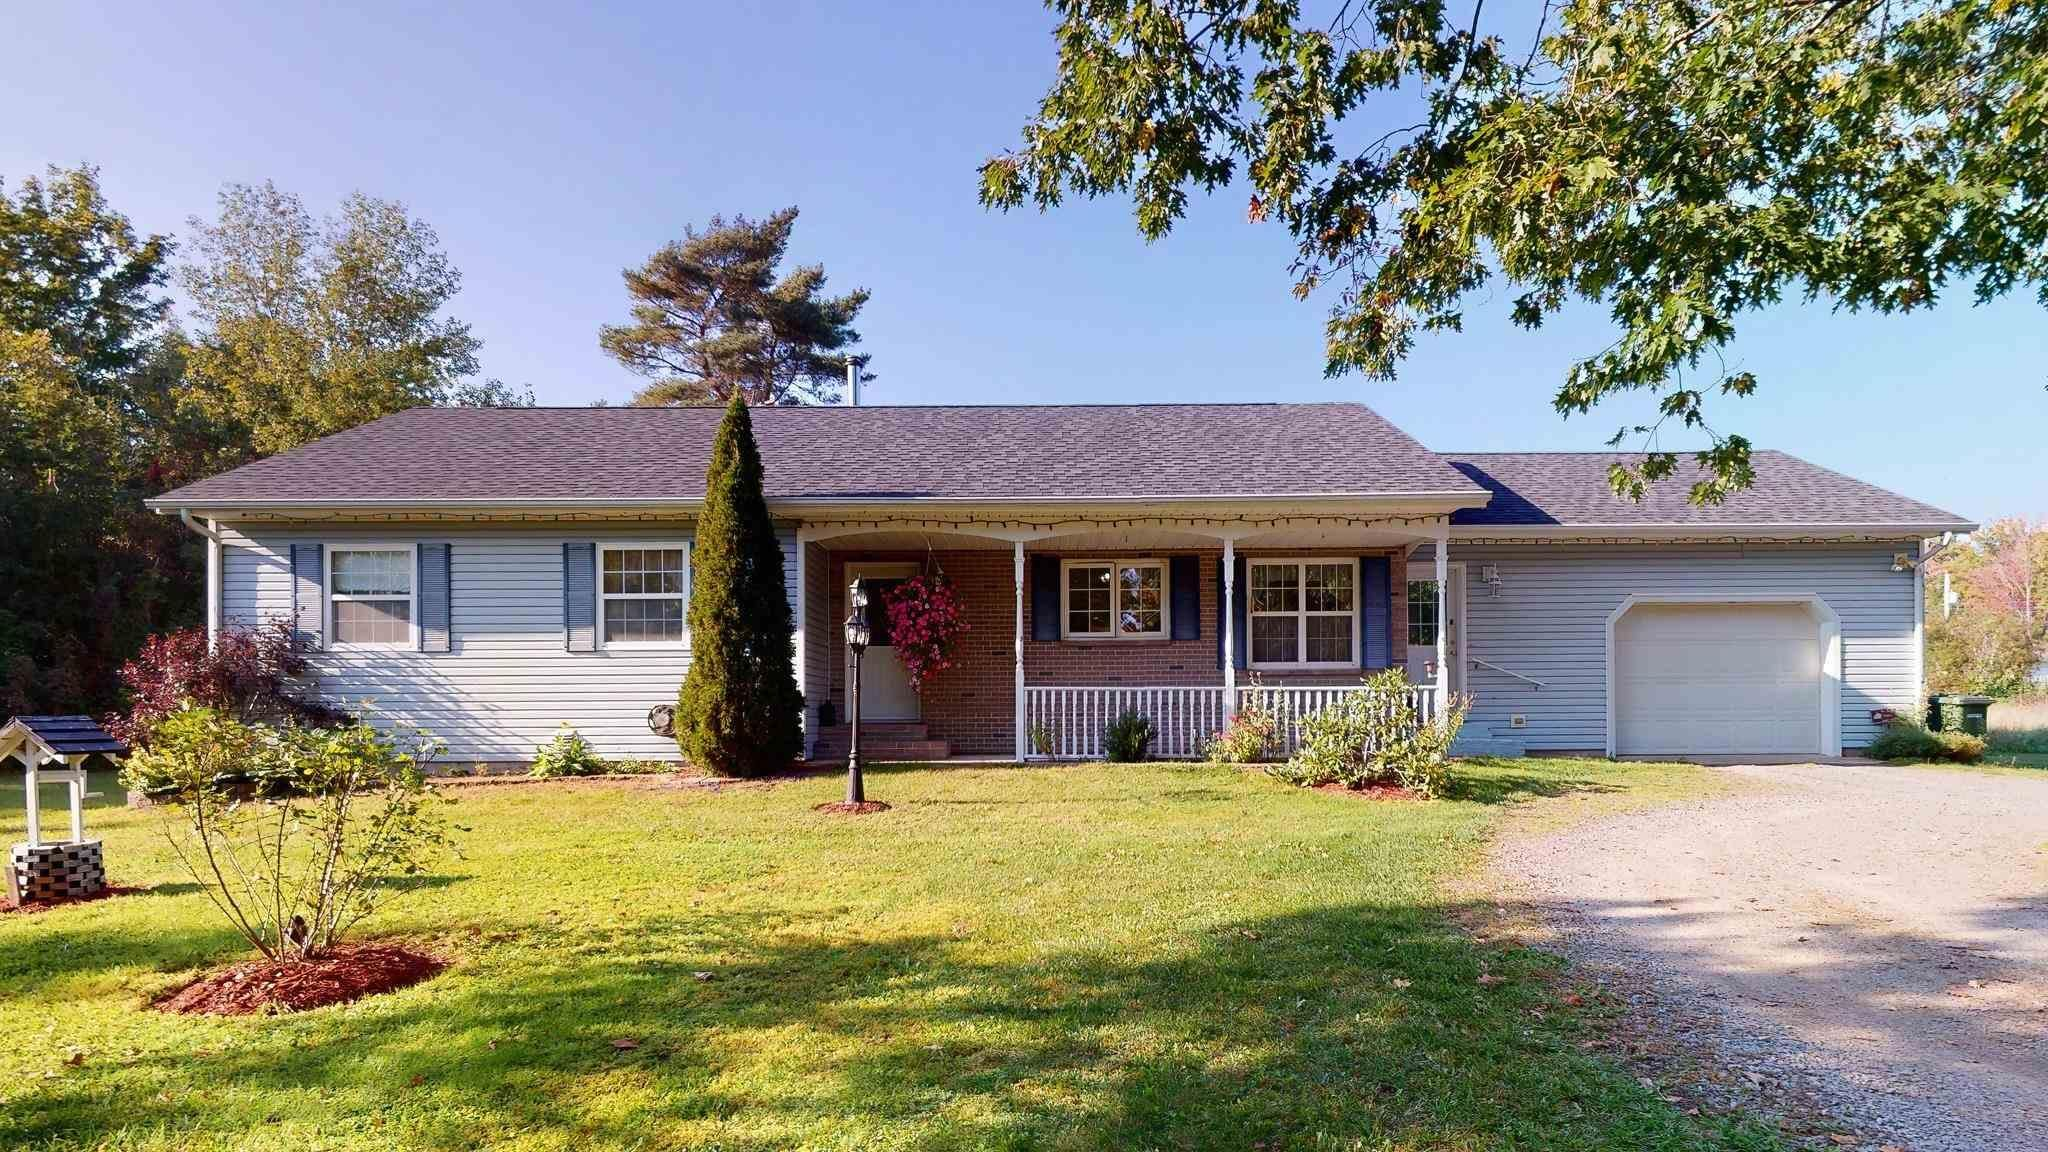 Main Photo: 2521 Highway 1 in Aylesford: 404-Kings County Residential for sale (Annapolis Valley)  : MLS®# 202125612